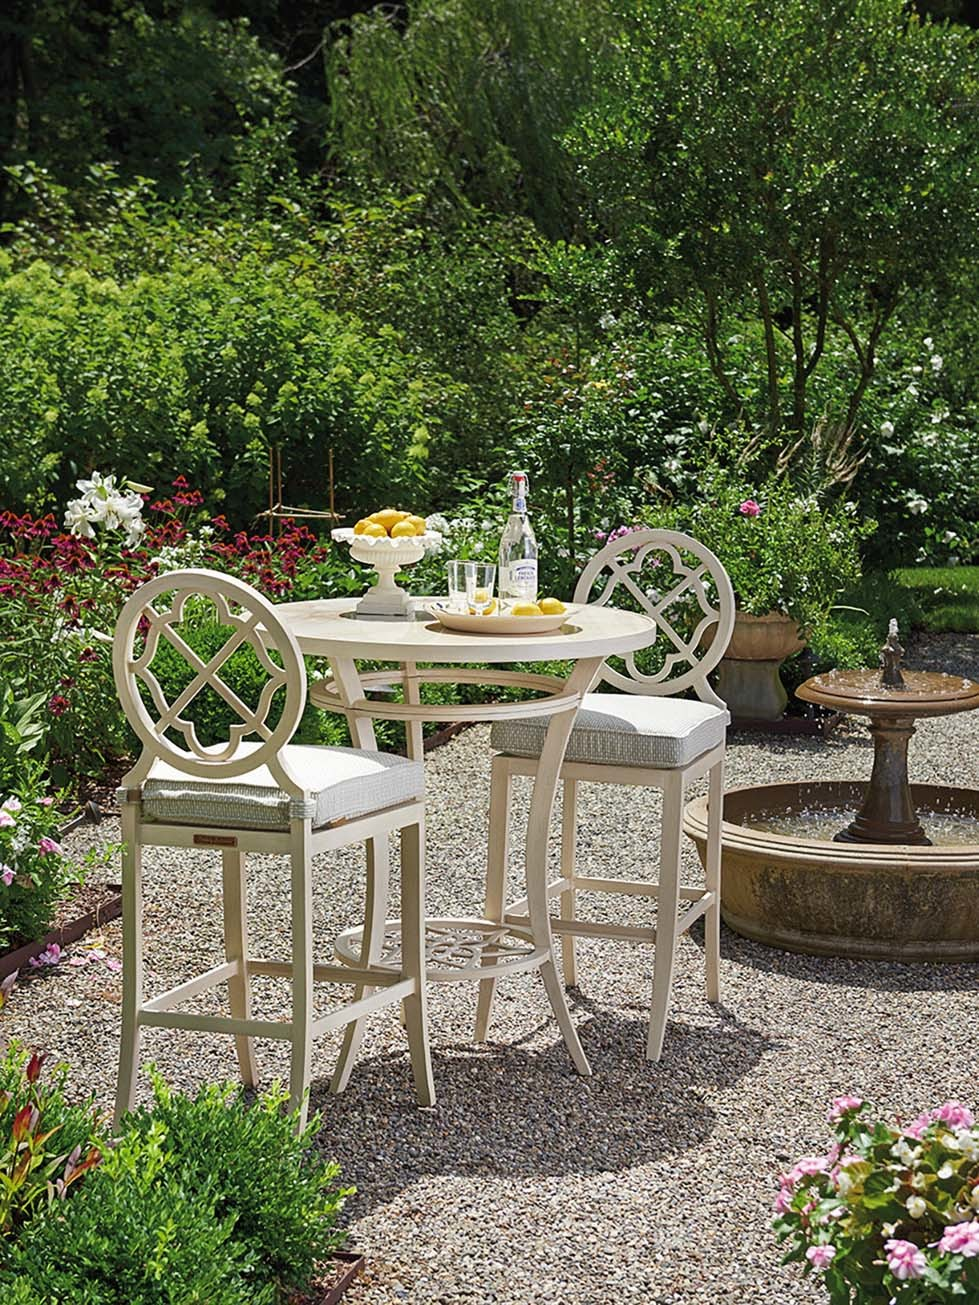 Tommy Bahama Outdoor Living Misty Garden bistro table